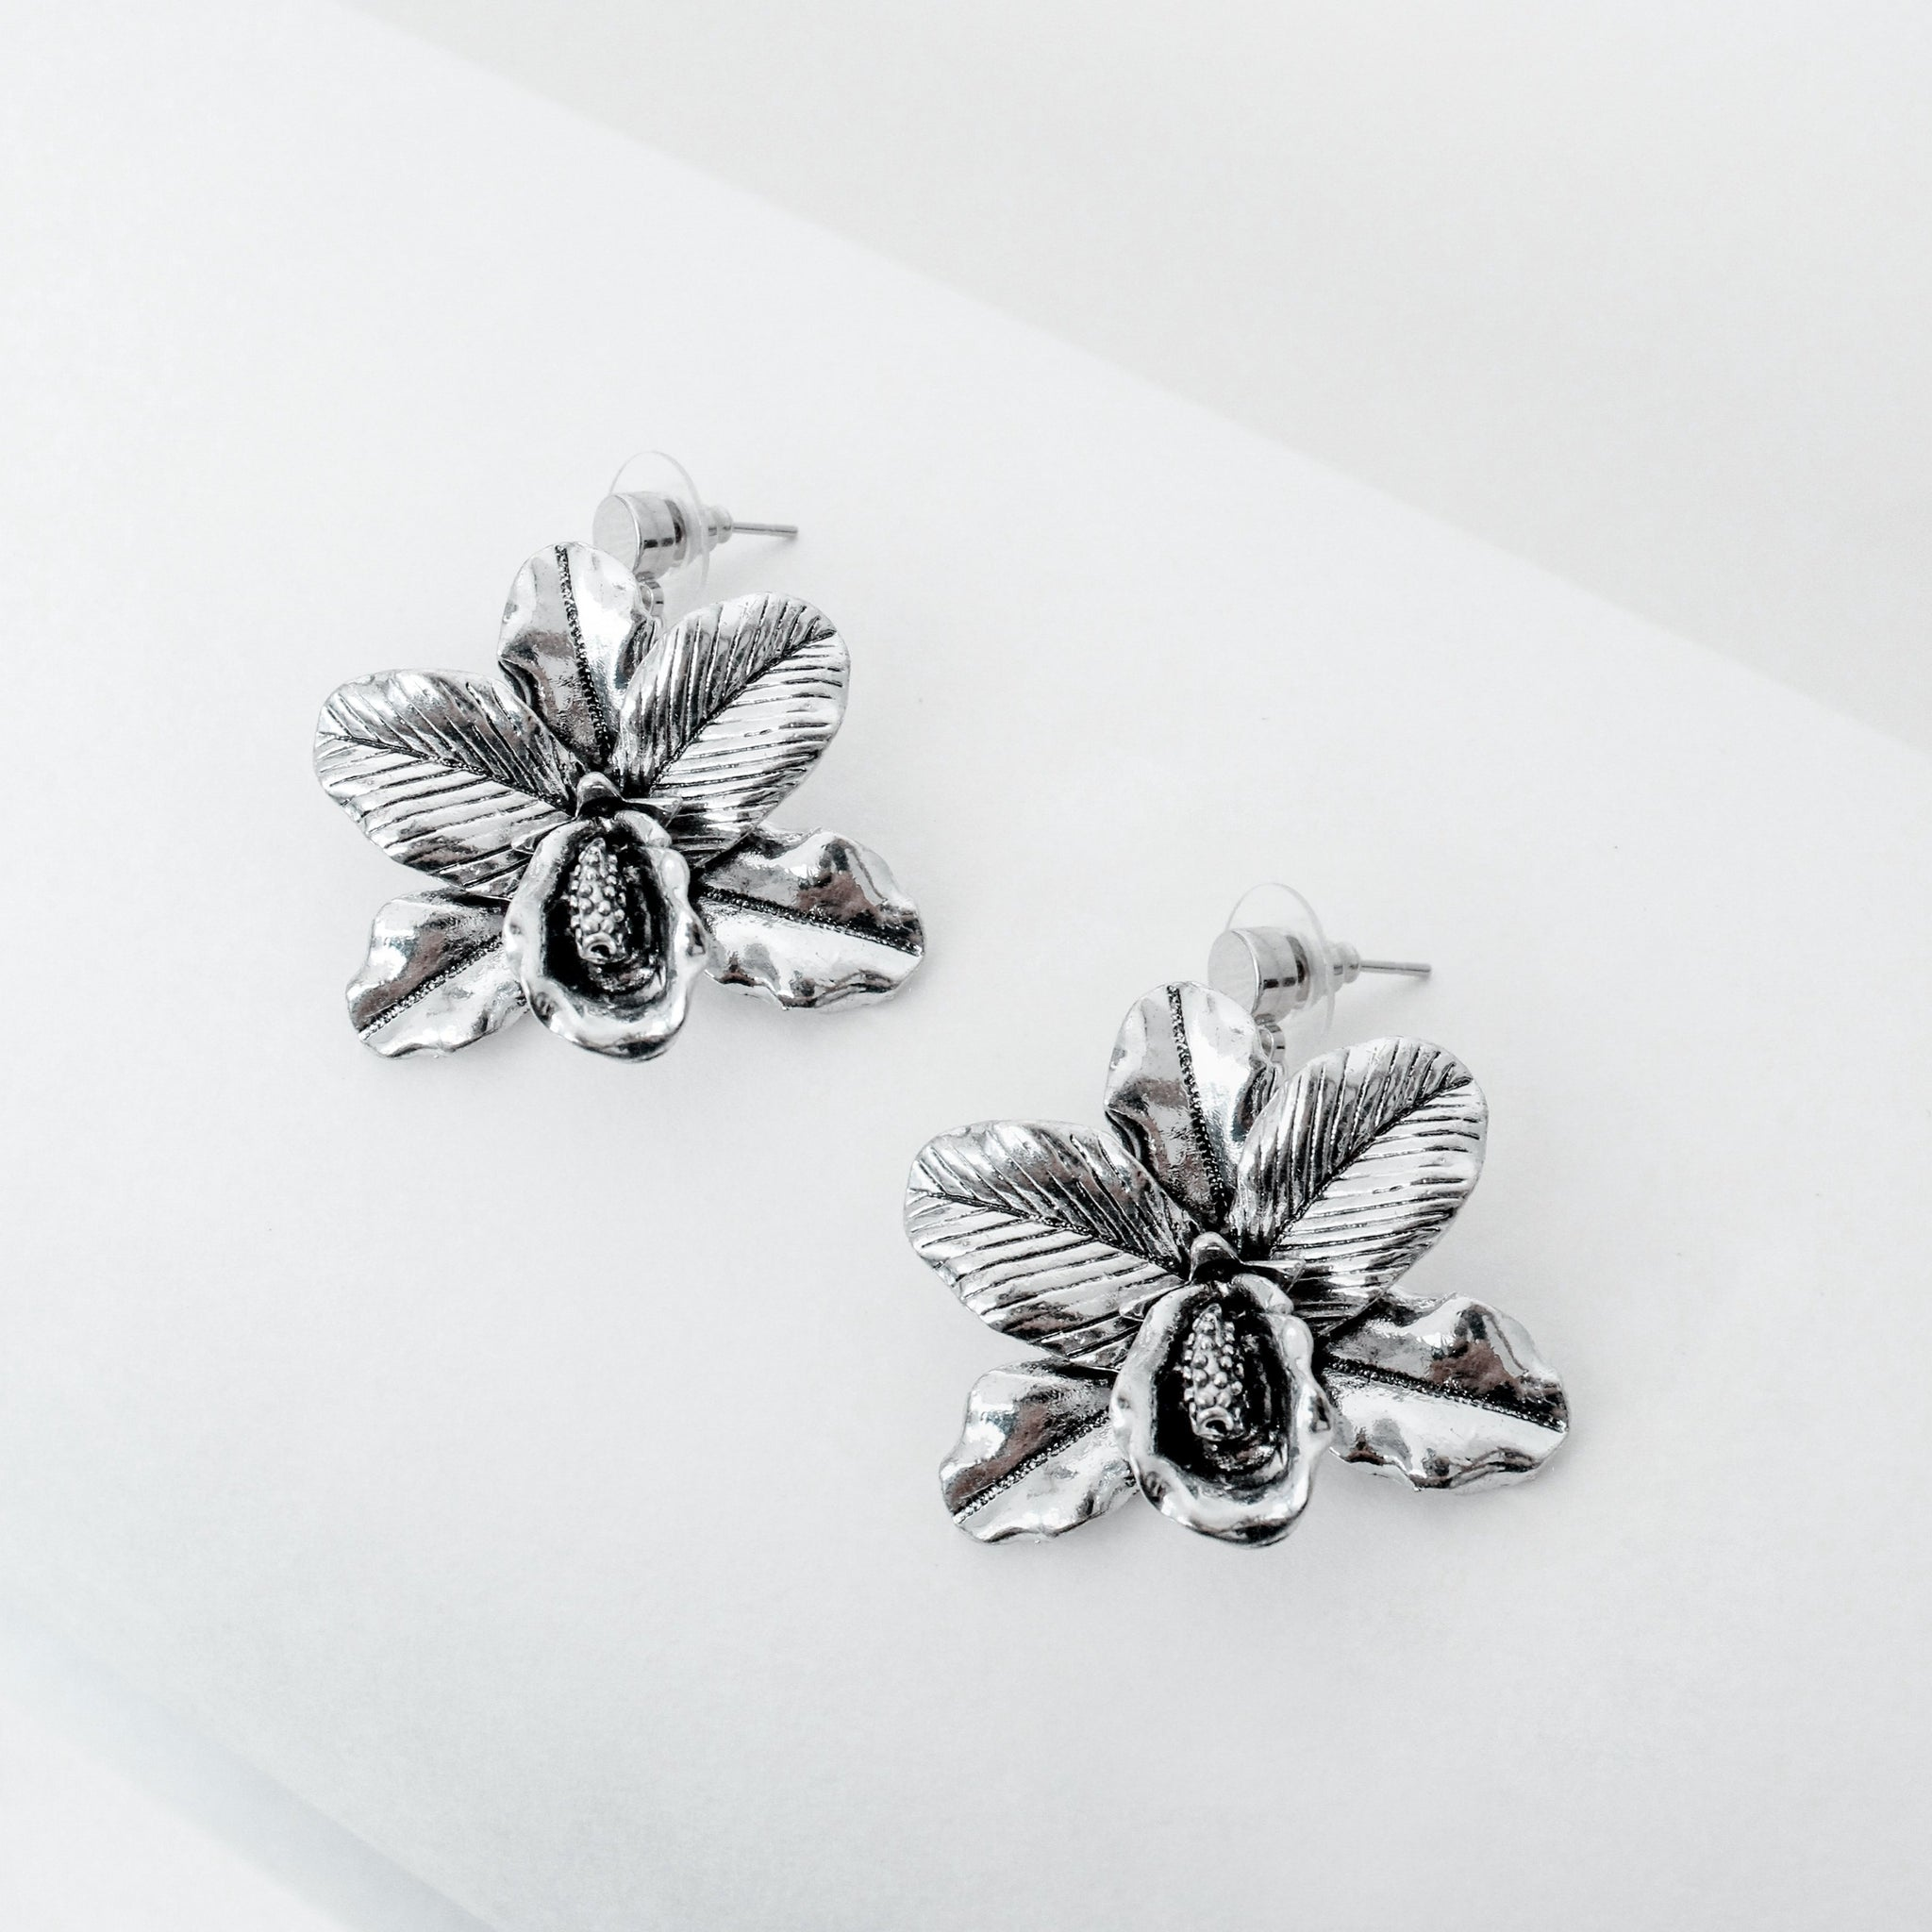 Monja Blanca Earrings - Navarro Official